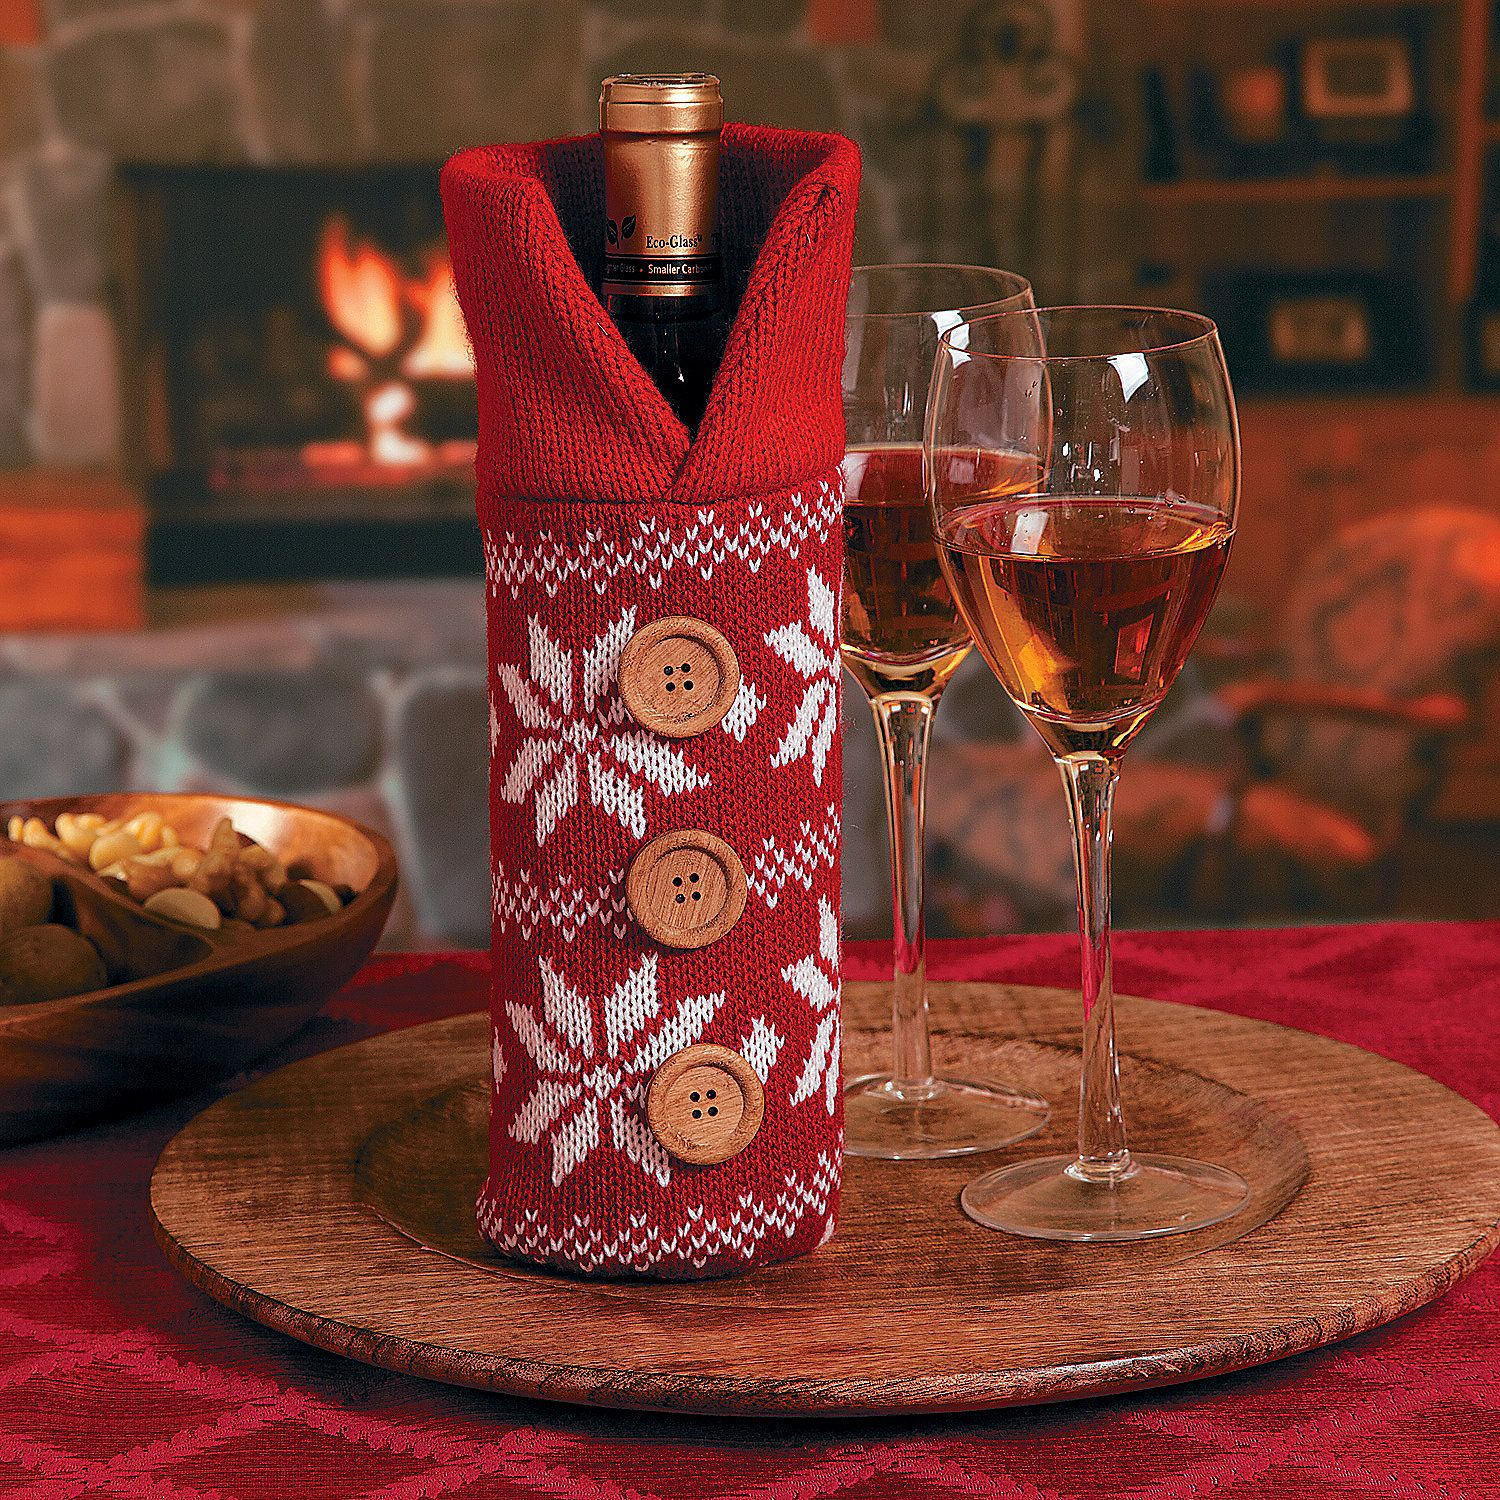 I Could Totally Make This: Red Sweater Bottle Bag. I Bet I Could Totally Make This